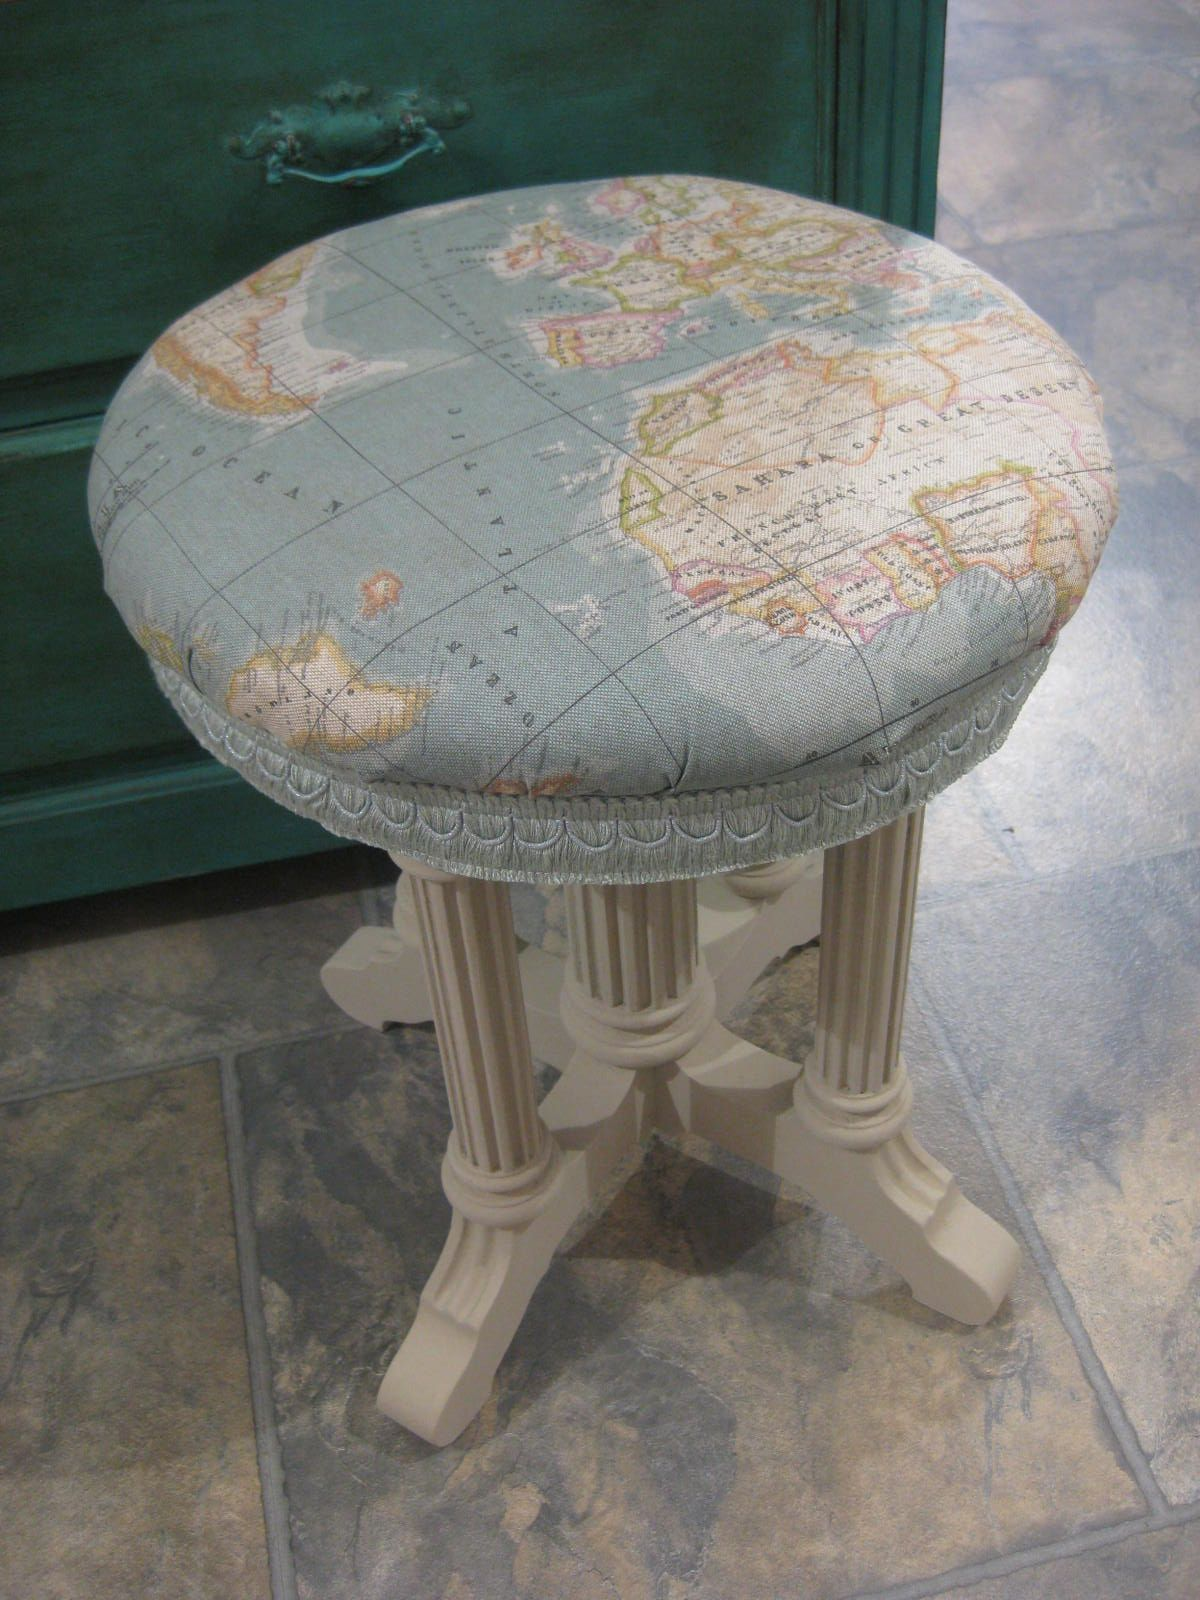 Piano stool covered in world map fabric by annie sloan stool piano stool covered in world map fabric by annie sloan gumiabroncs Image collections